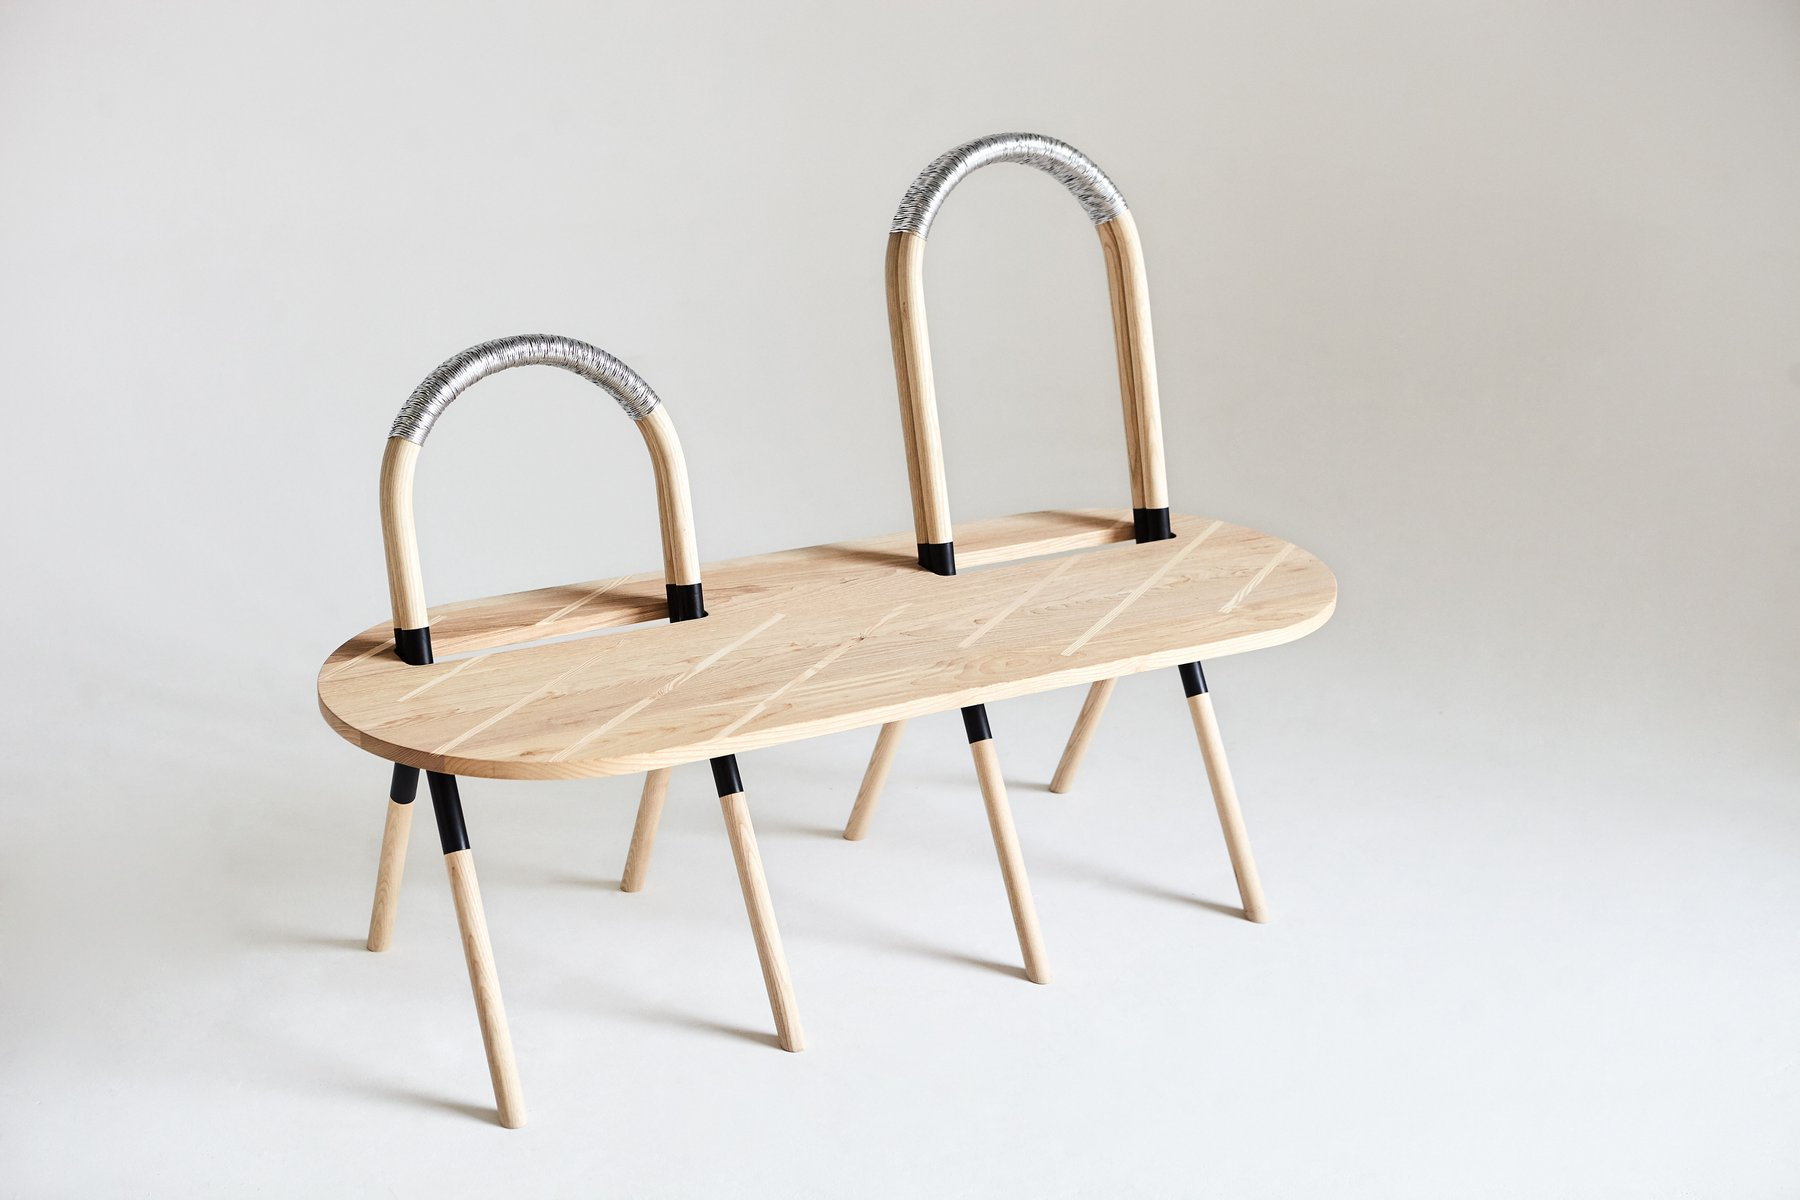 WNWI Bench By De Allegri And Fogale 2016 For Sale At Pamono